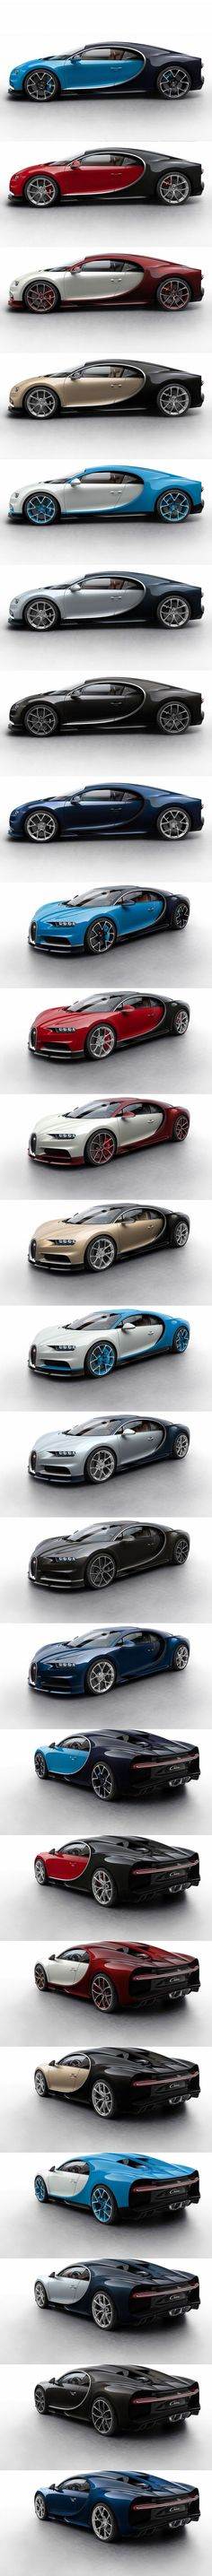 2016 Bugatti Chiron configurator / France / blue red black white brown silver